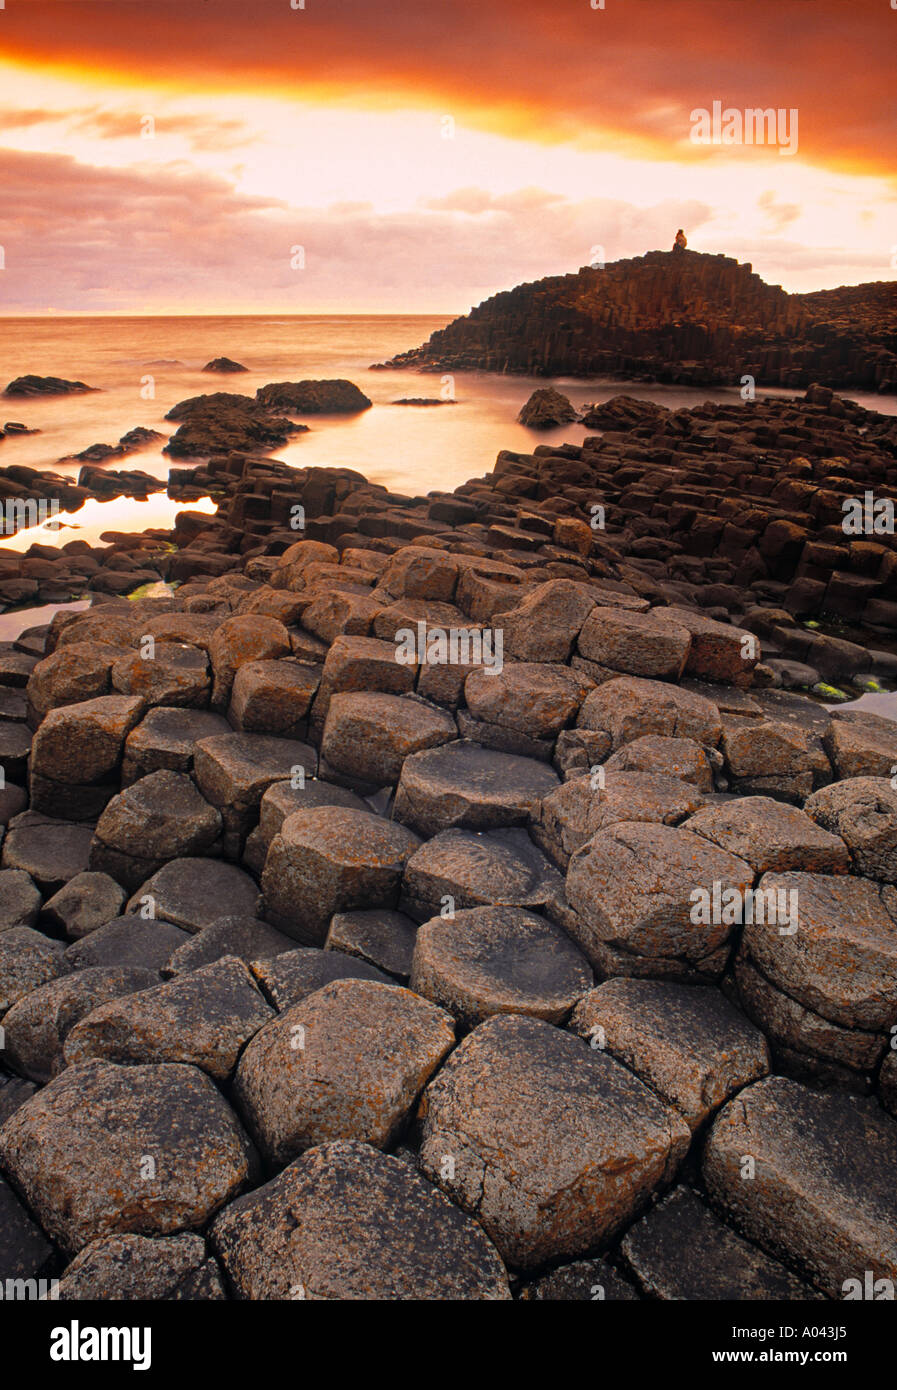 Giants Causeway, Northern Ireland - Stock Image